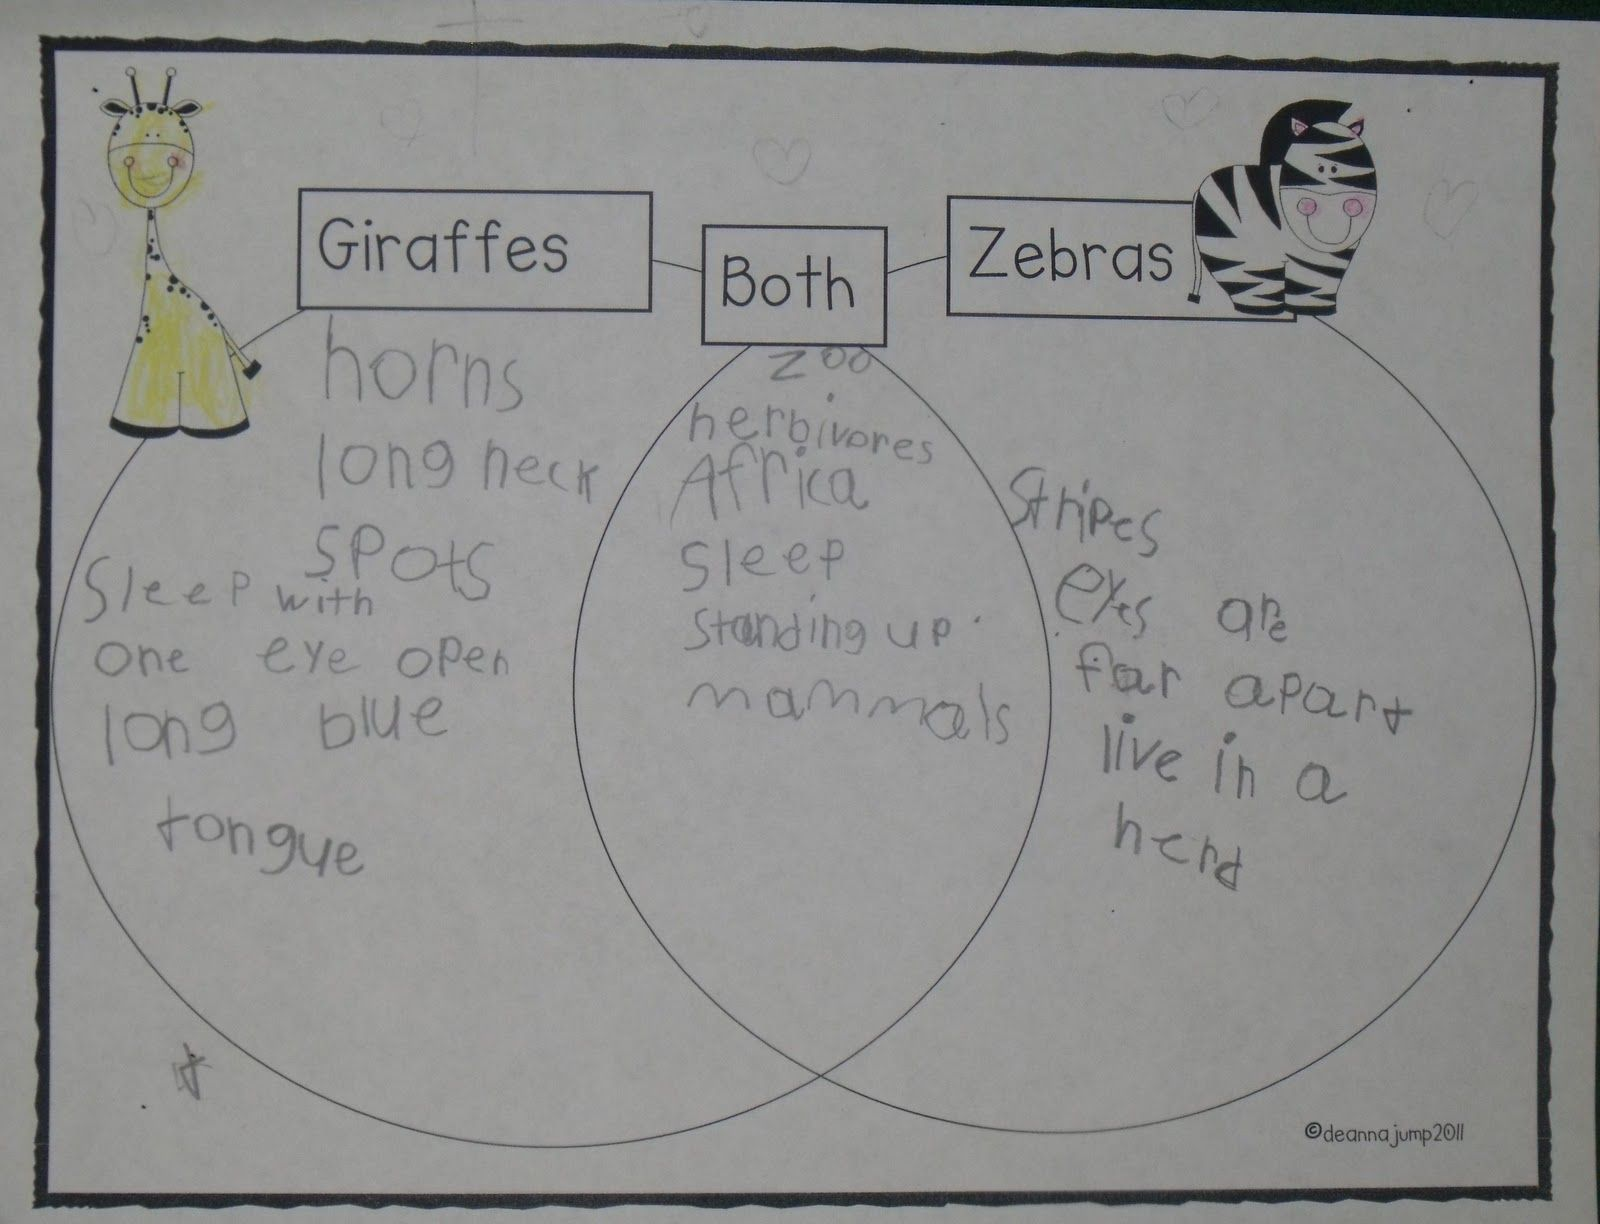 Zoo Venn Diagram Comparing Giraffes And Zebras